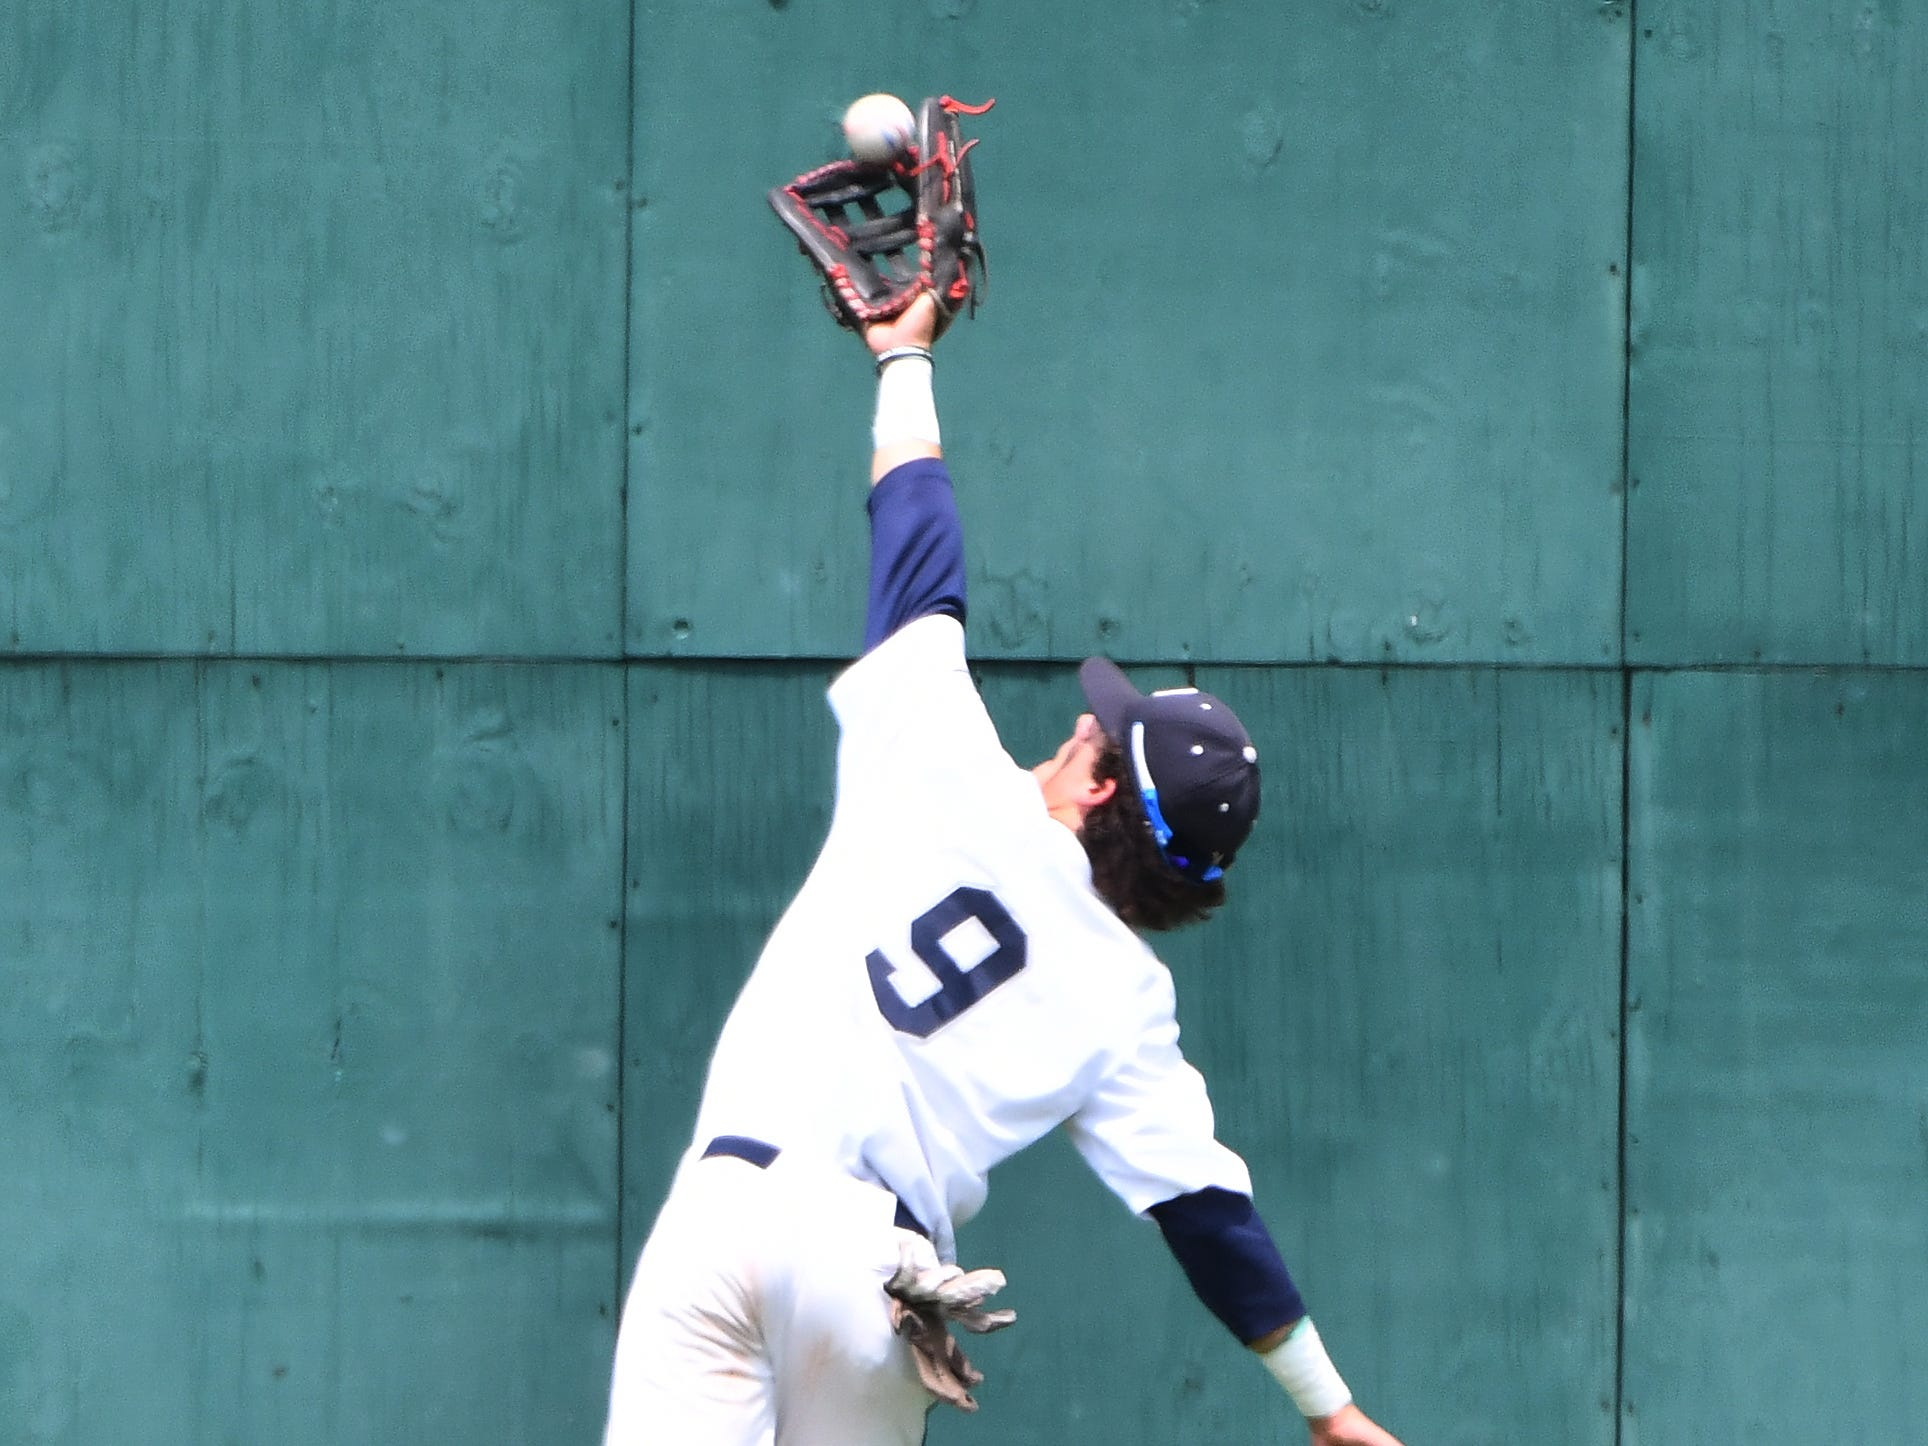 Macomb Dakota outfielder Patrick Merolla appears to catch this long fly ball off the bat of Grosse Pointe South High School's Logan Maclean during an  MHSAA baseball quarterfinal game at Wayne State University in Detroit, Michigan on June 12, 2018. The ball eluded Merolla on the play and victory eluded Macomb Dakota as G.P. South went on to a  9-1 victory en route to a Div. 1 state title.